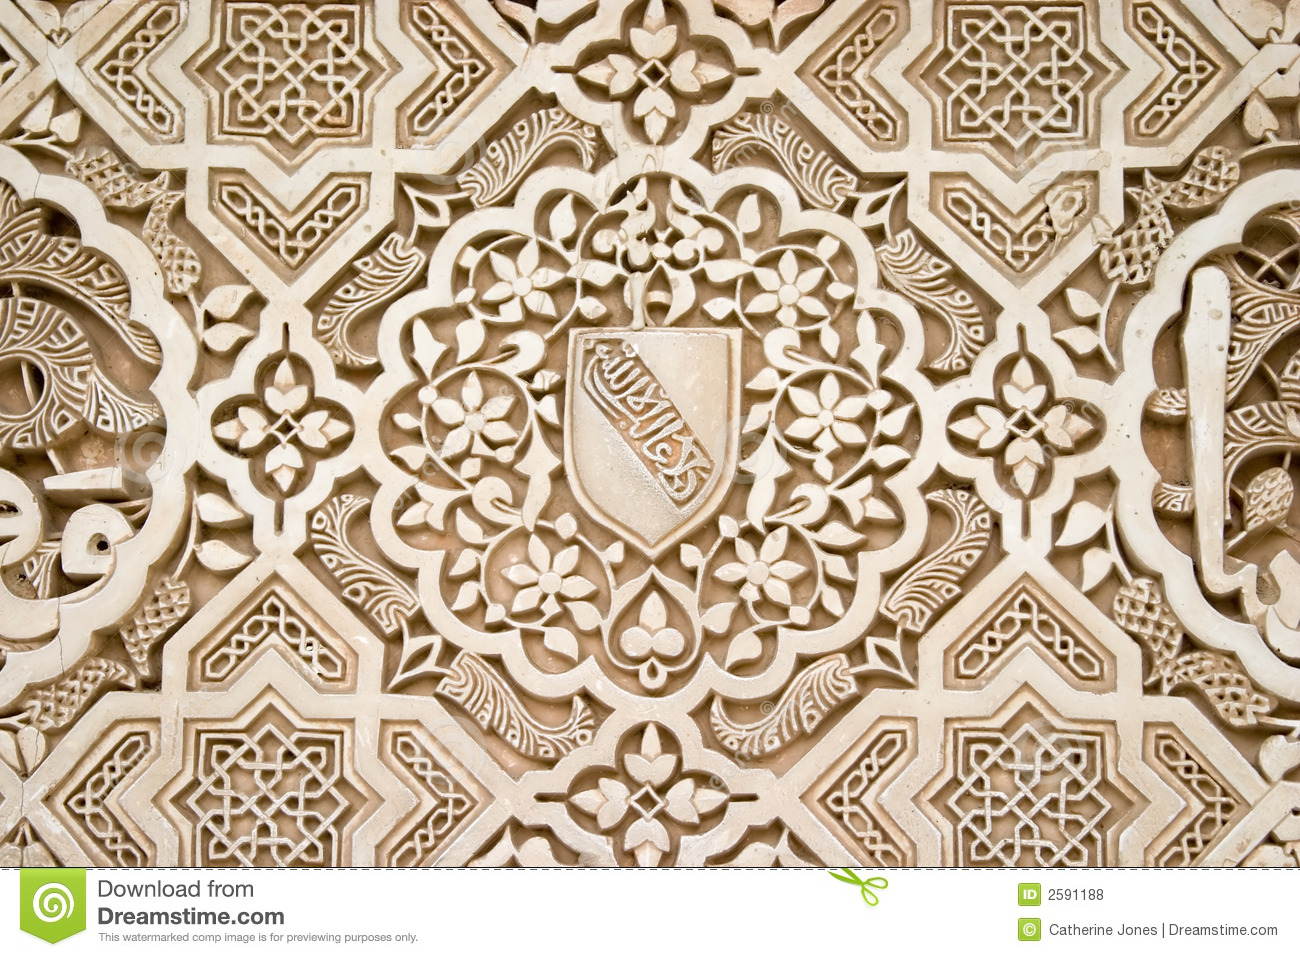 Royalty Free Stock Photos: Islamic art and architecture